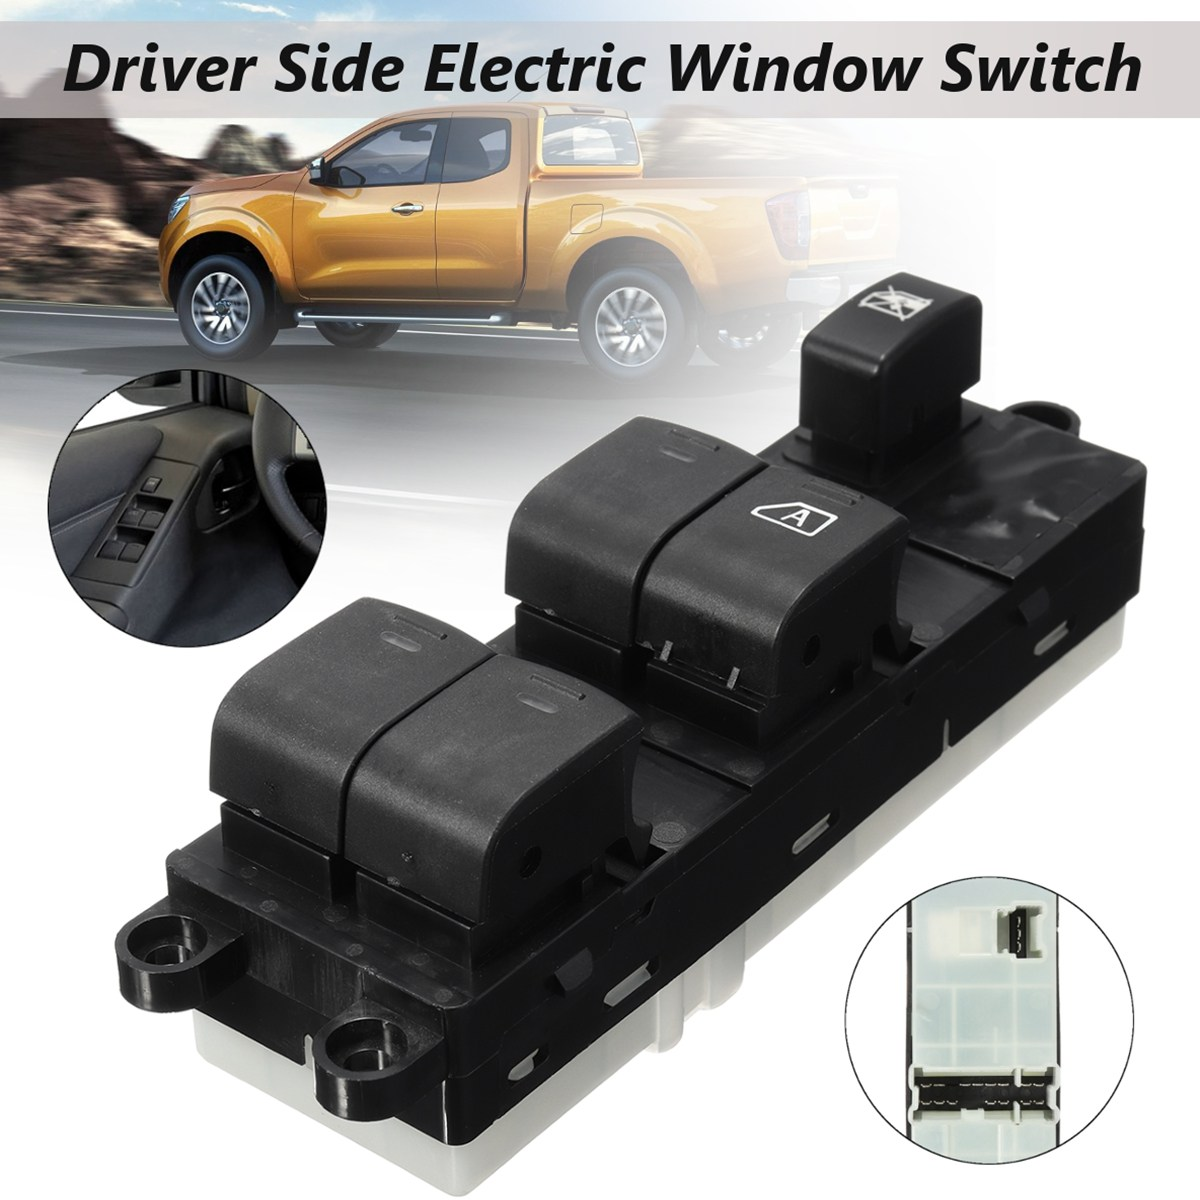 25401 Eb30b 25401eb30b Abs Frontright Driver Side Electric Power Nissan Navara Fuse Box Location Window Switch For 2011 2012 2013 2014 In Car Switches Relays From